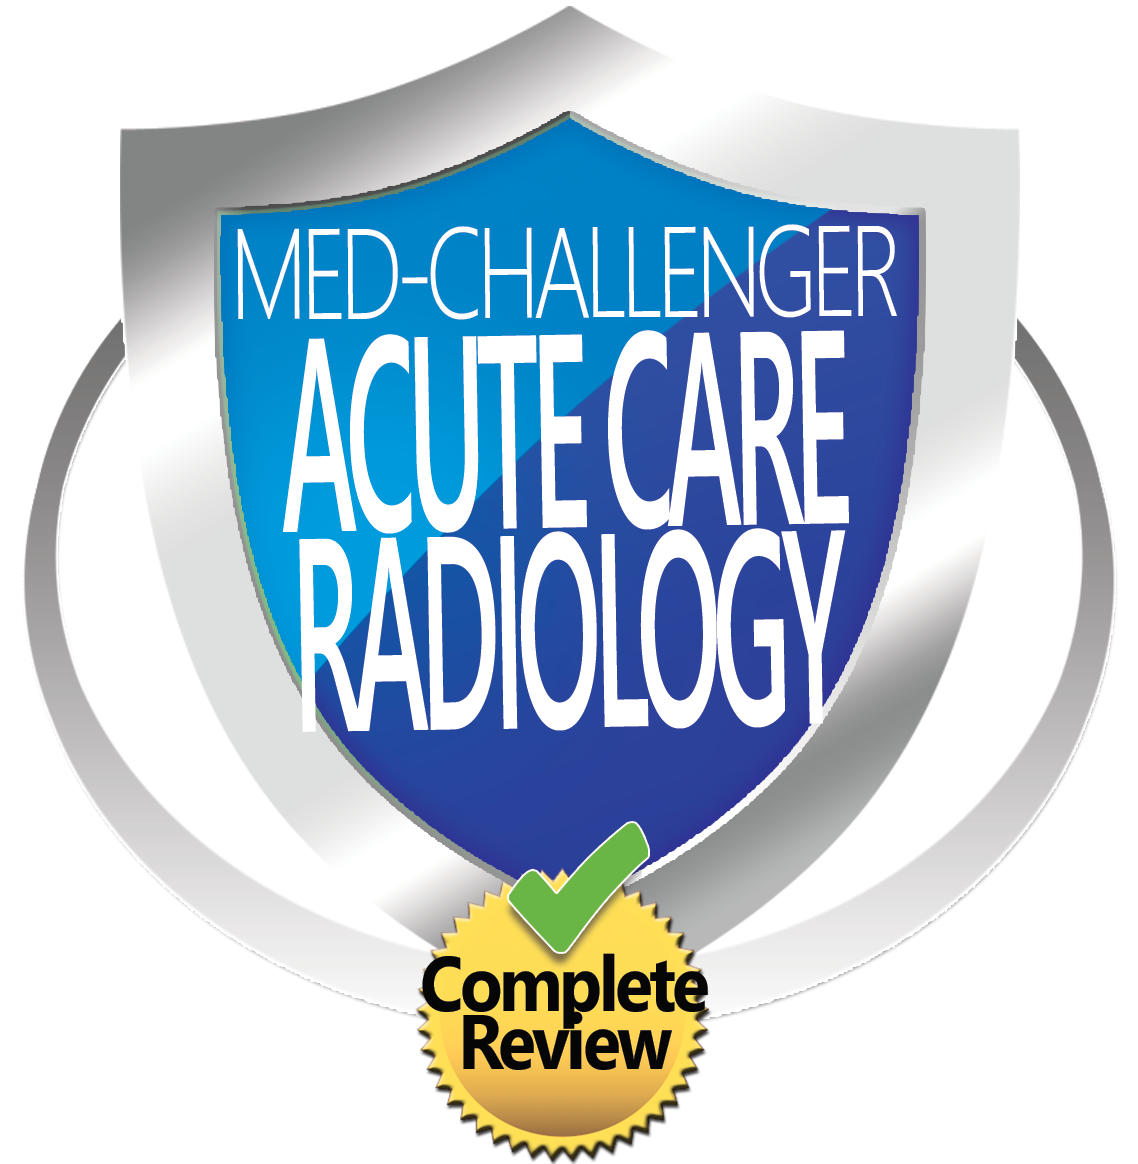 Acute Care Radiology Skills Review, Med-Challenger Acute Care Radiology, Complete Review